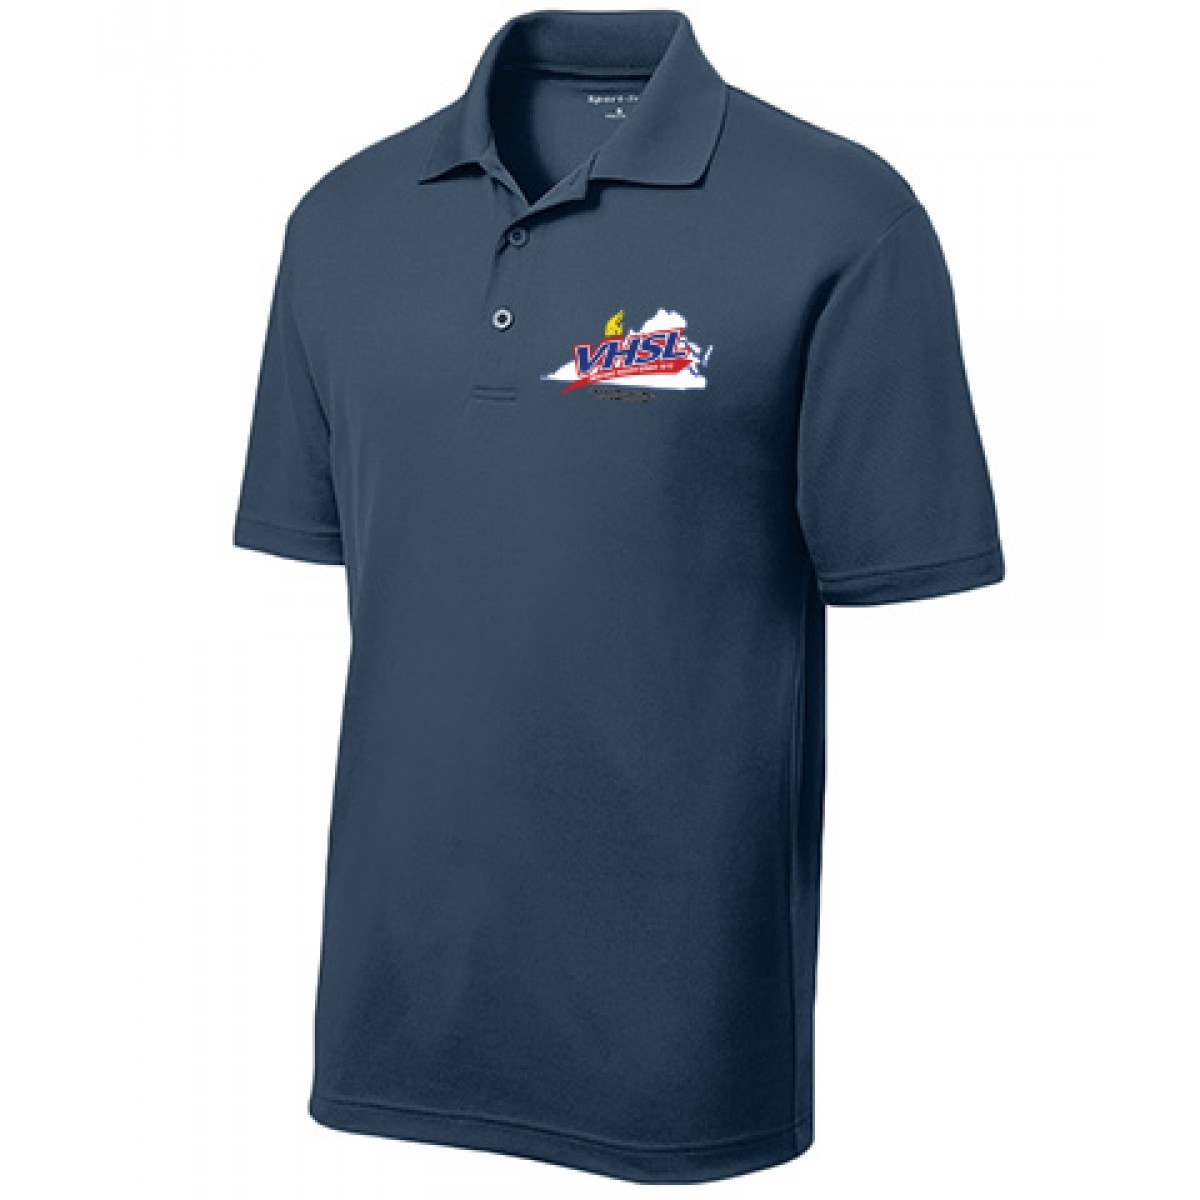 Moisture Wicking Emroidered Men's Polo